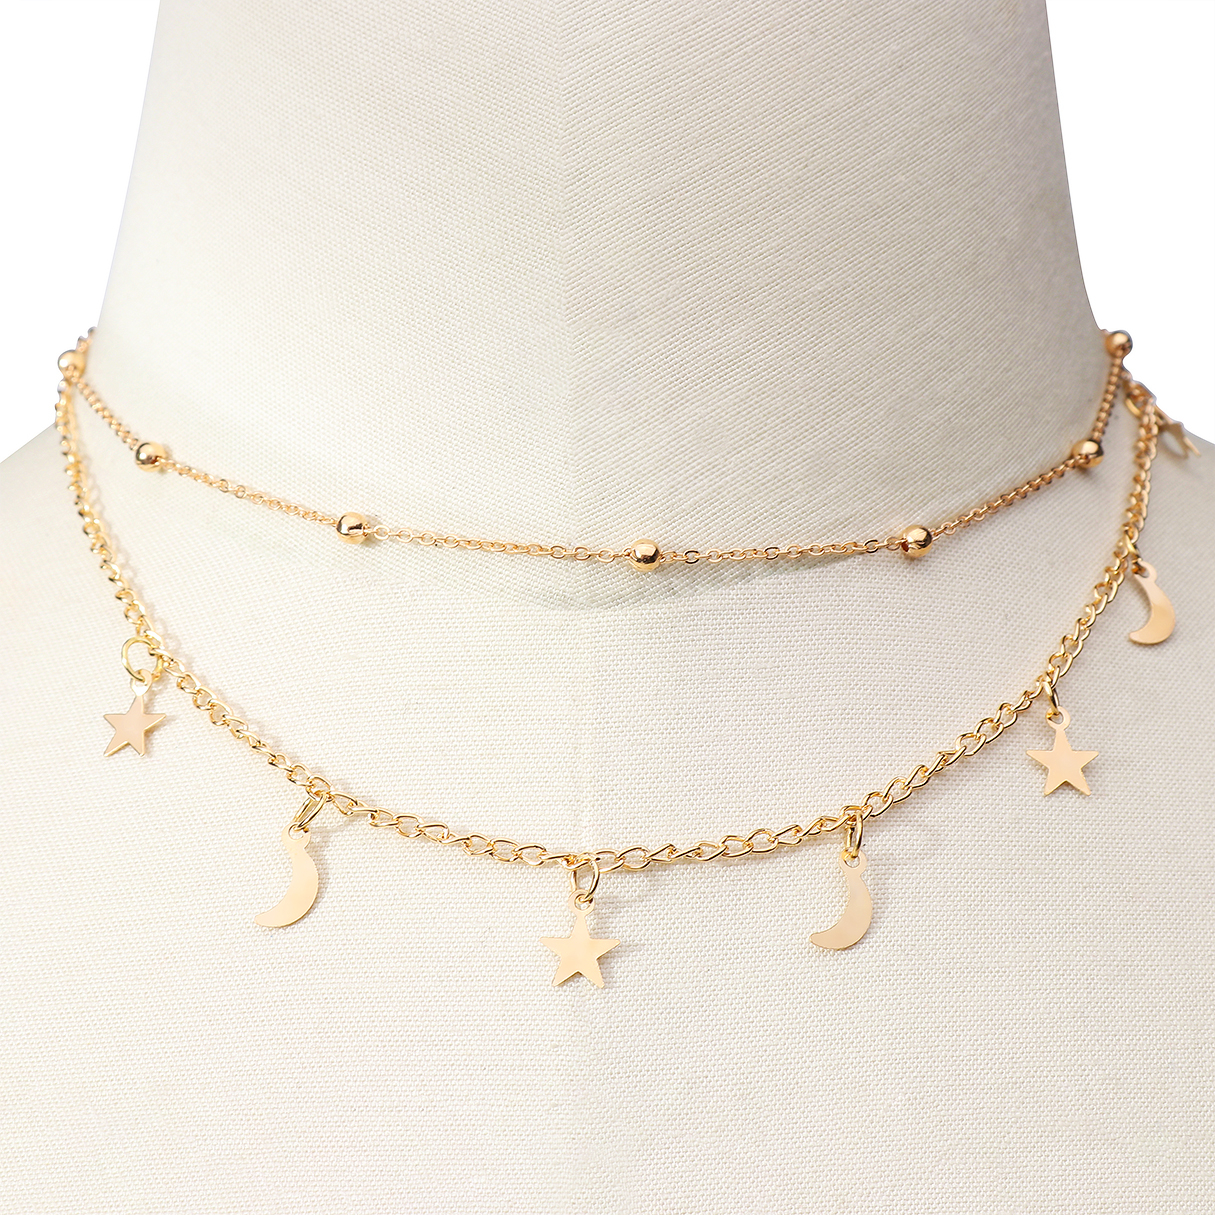 Beads Detail Moon Star Pendant Chain Necklace, Gold